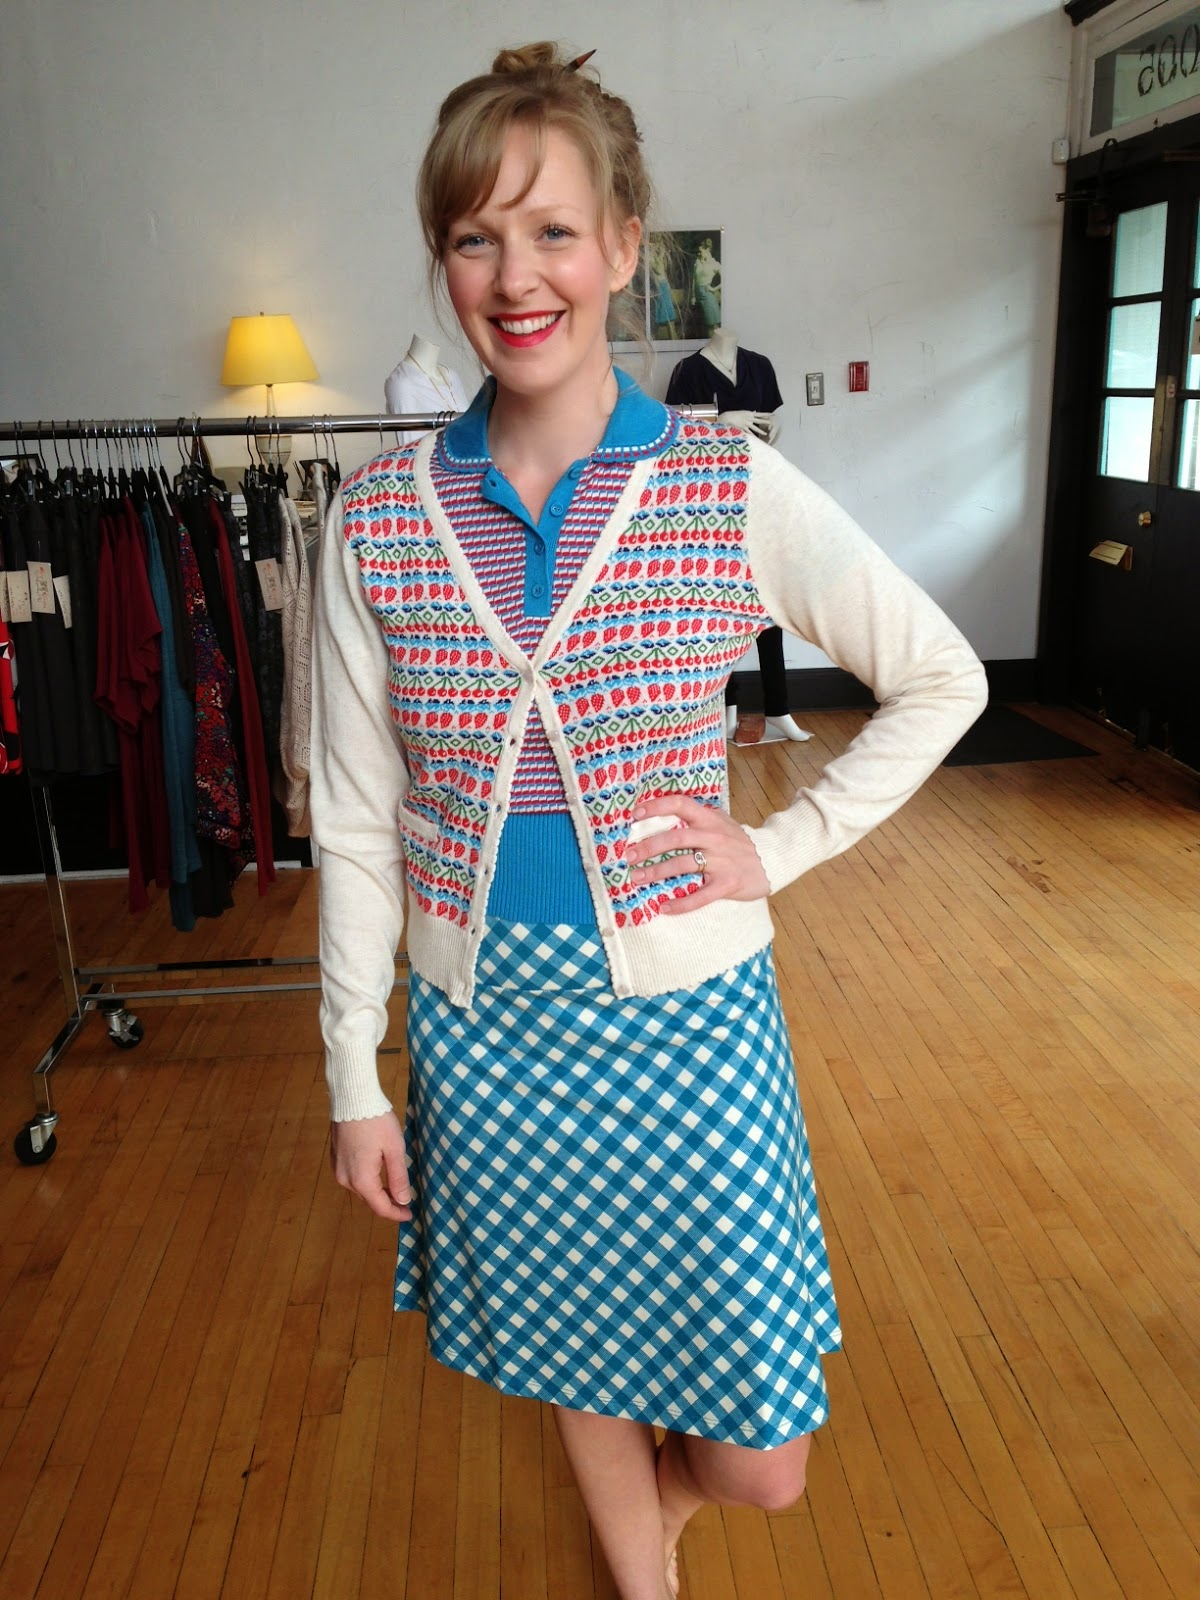 Louie et Lucie pebble polo top ($78),  summer fruit v-neck cardigan ($88), Jacky skirt ($68) at Folly